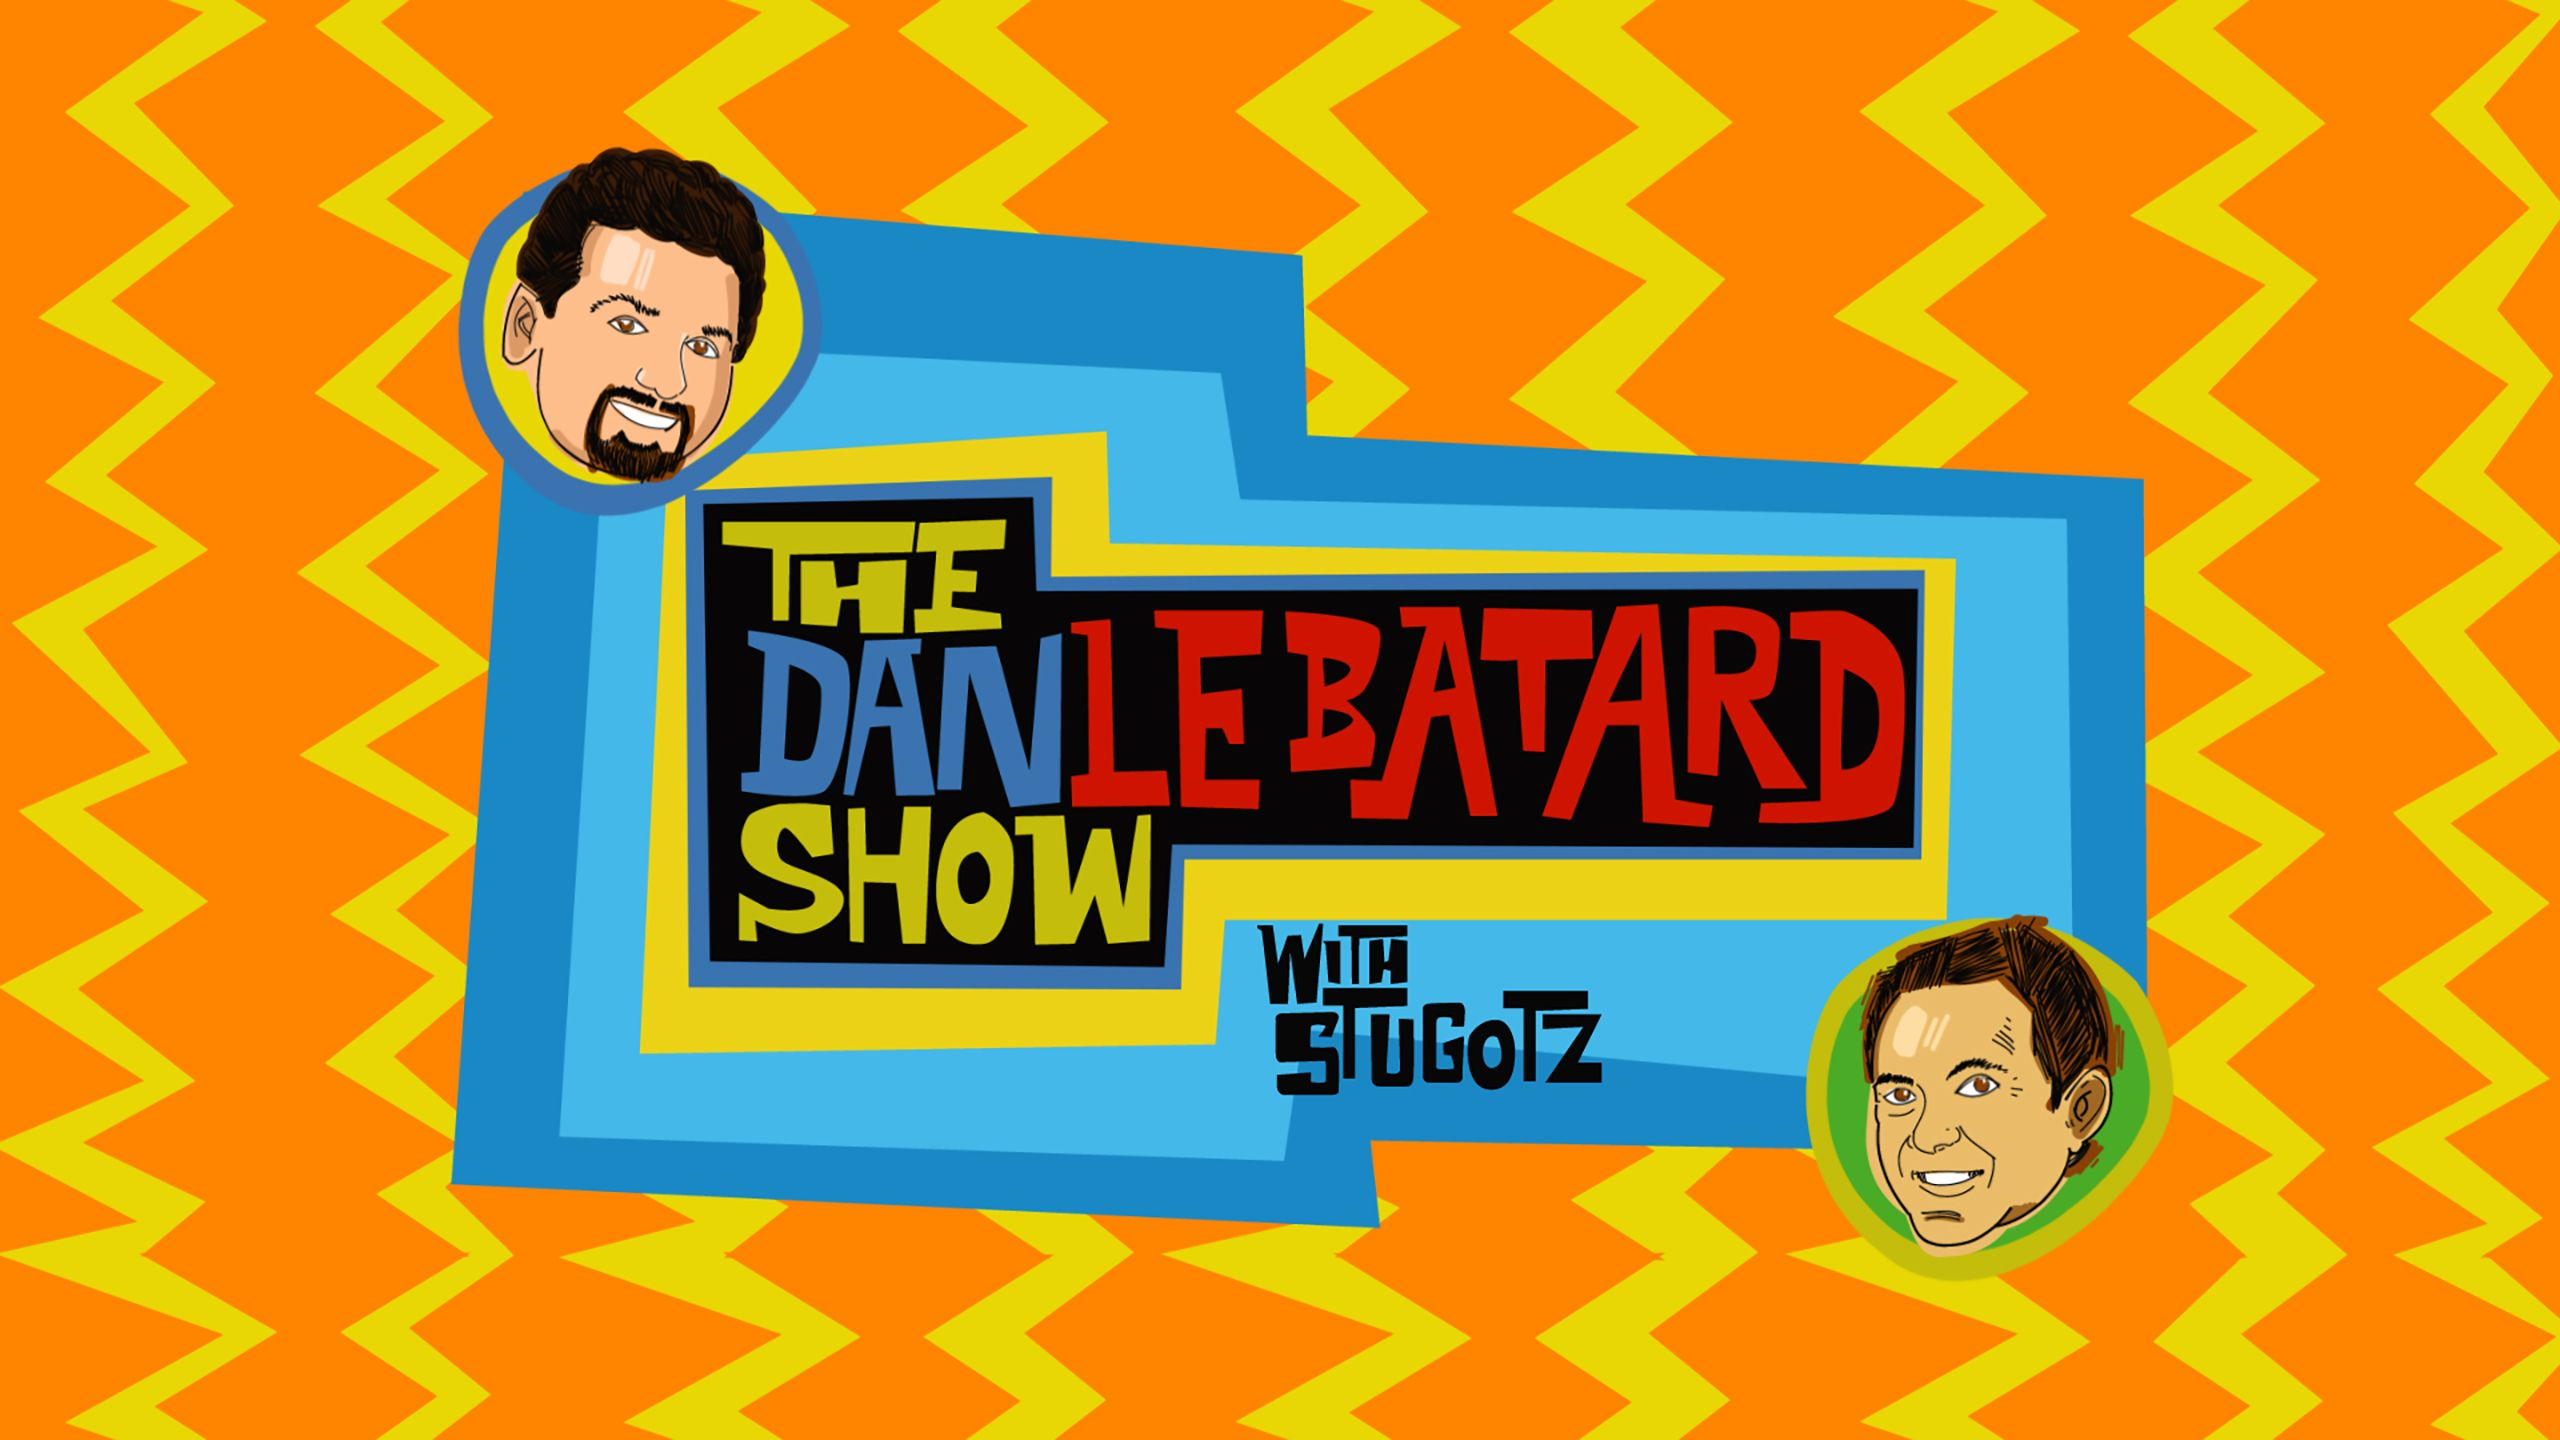 Tue, 11/21 - The Dan Le Batard Show with Stugotz Presented by Progressive